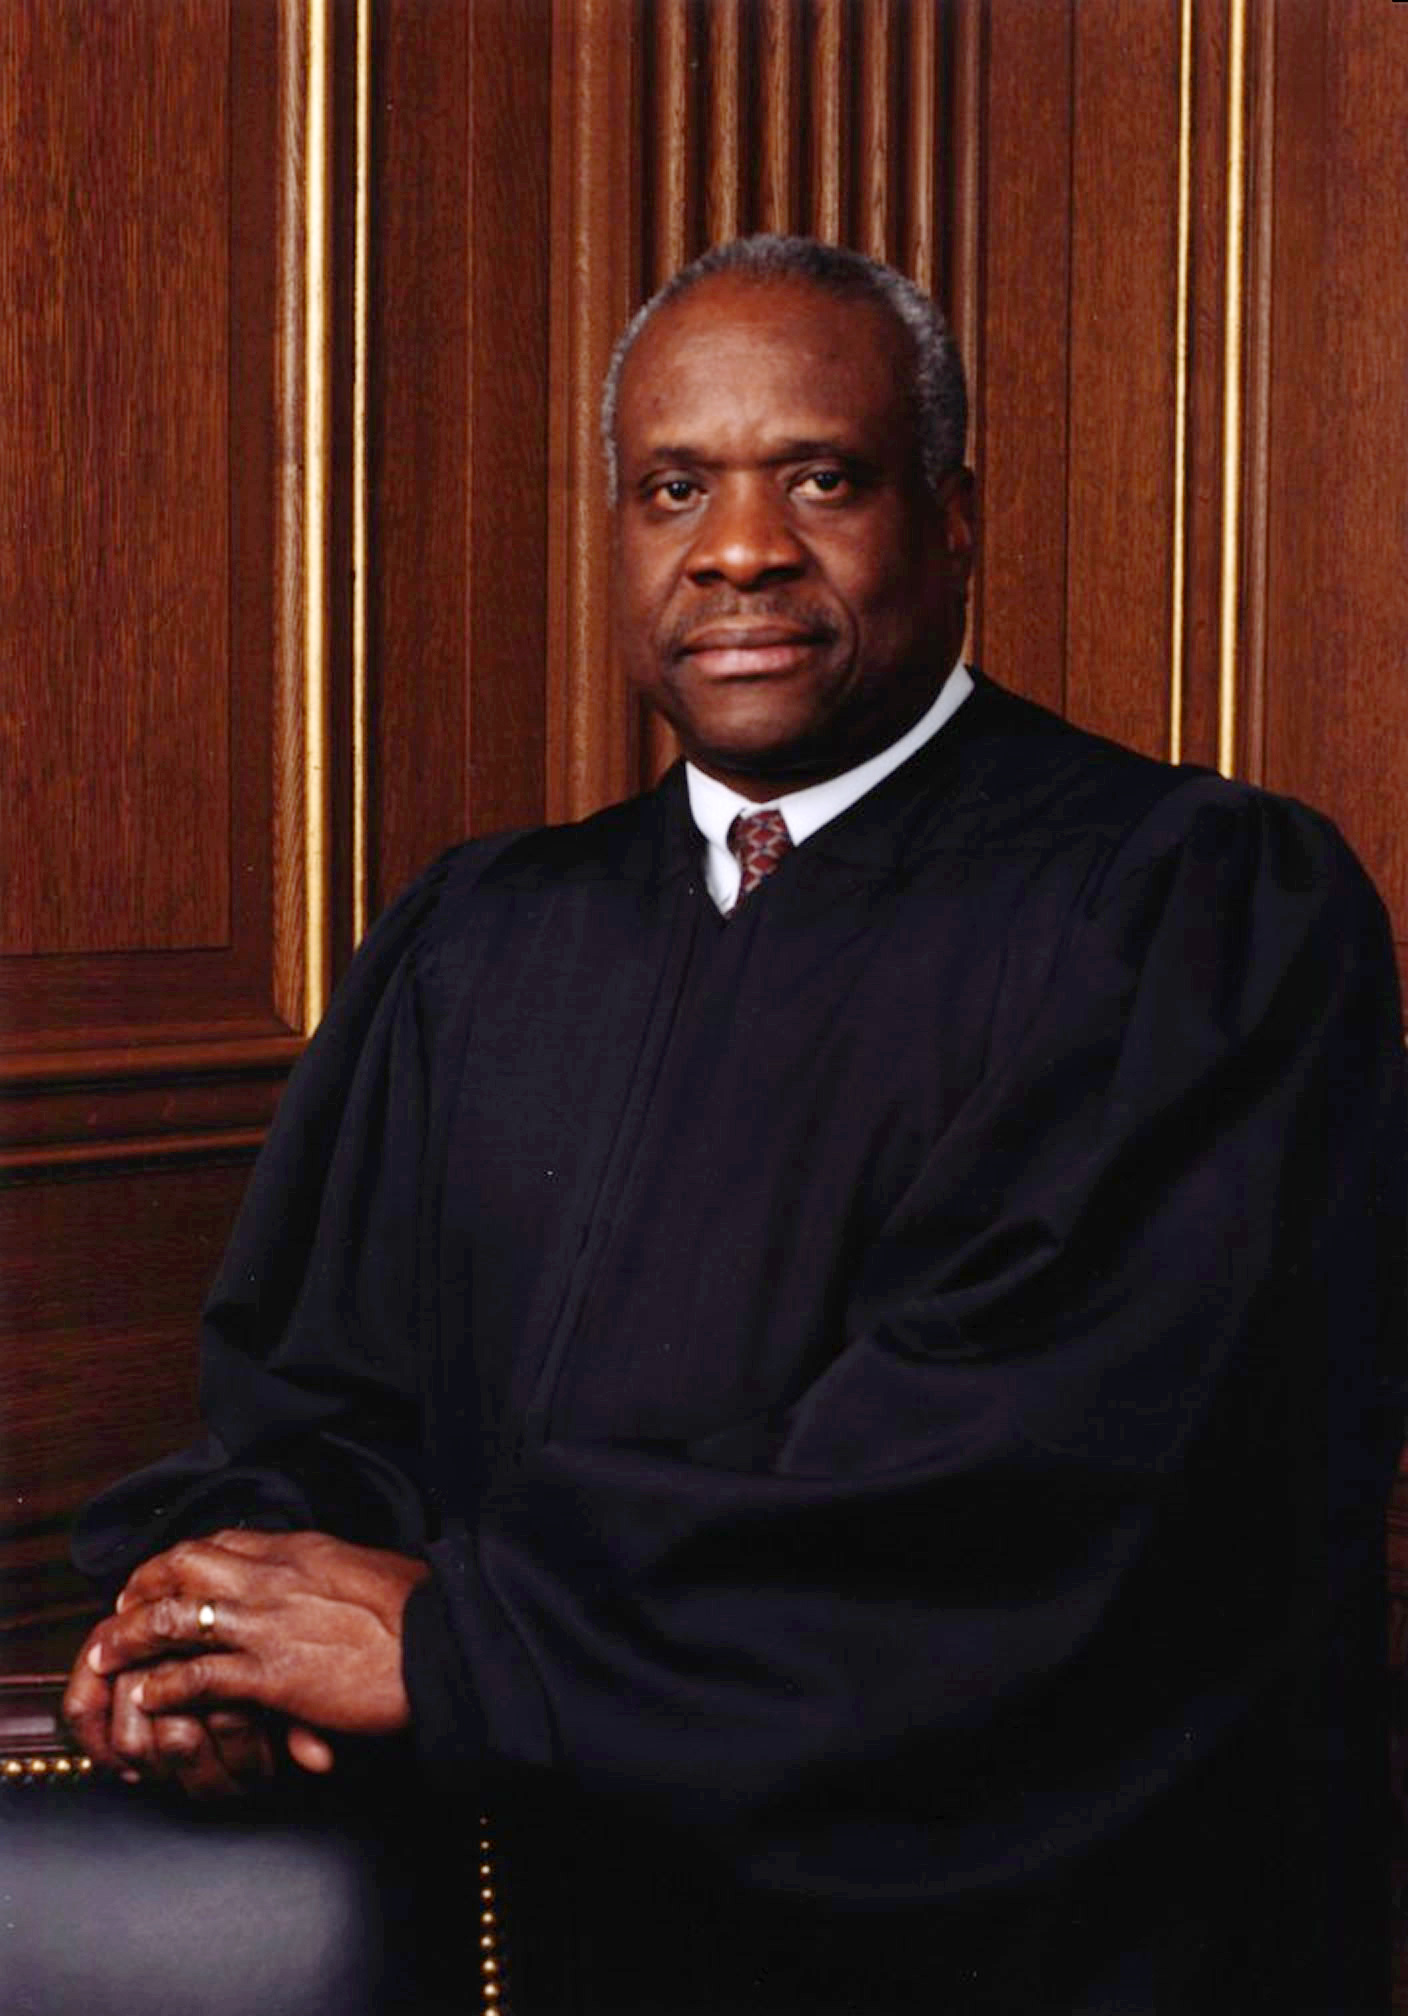 Clarence Thomas Opens Up About Finding God in 'One of the Darkest Periods of My Life'